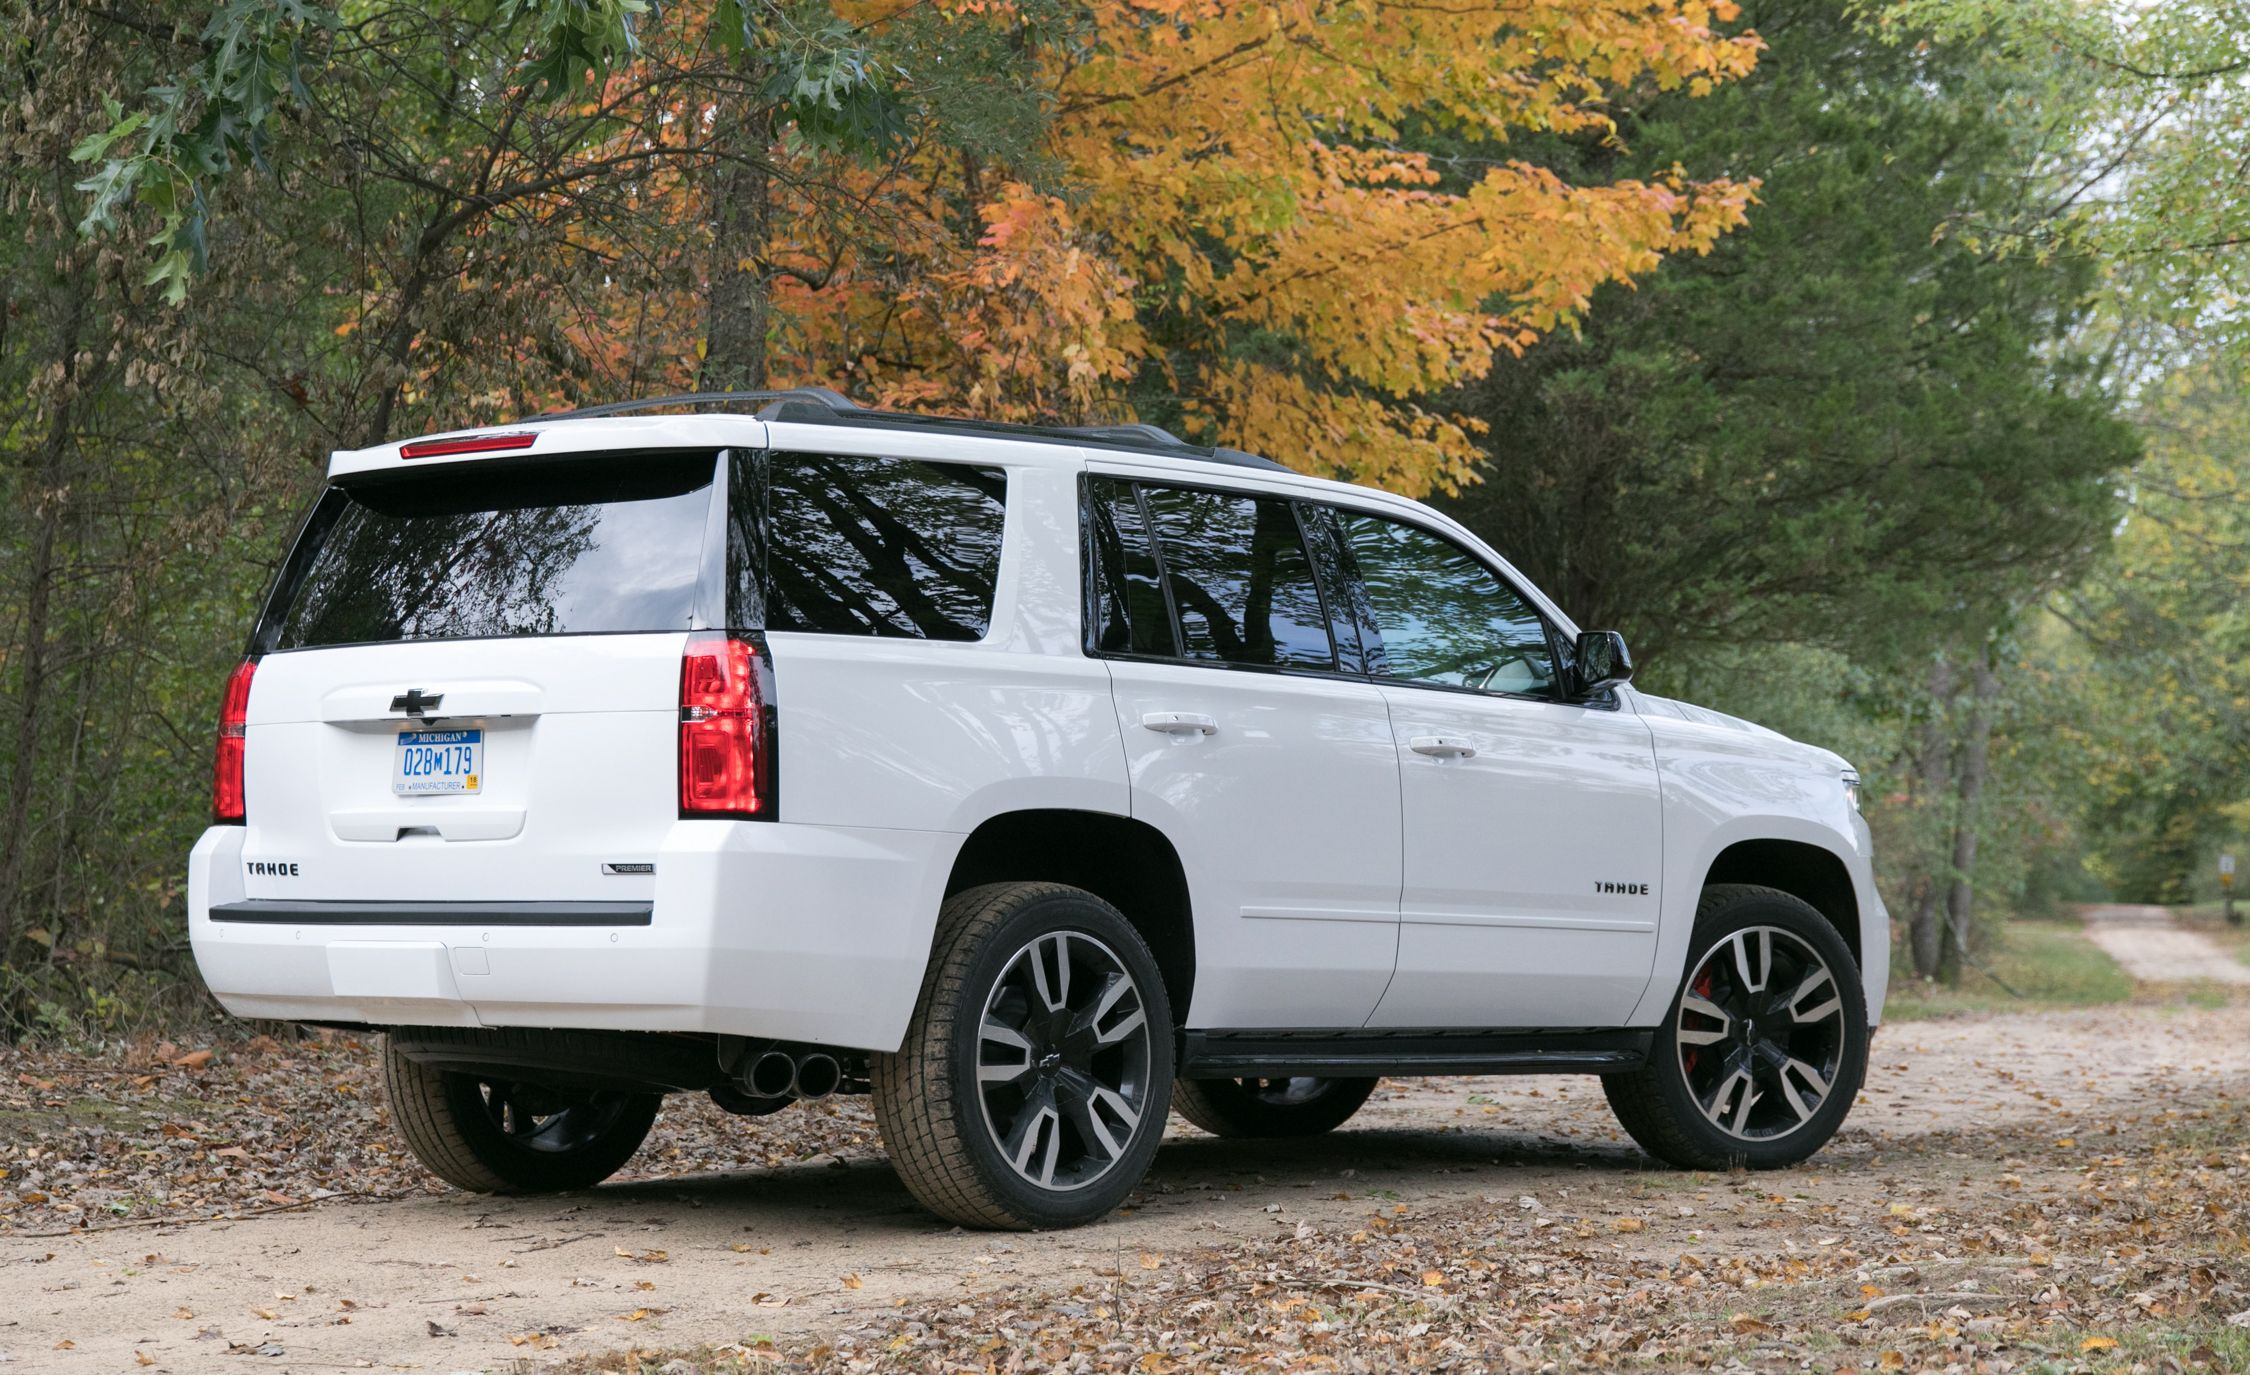 2020 chevrolet tahoe reviews   chevrolet tahoe price, photos, and